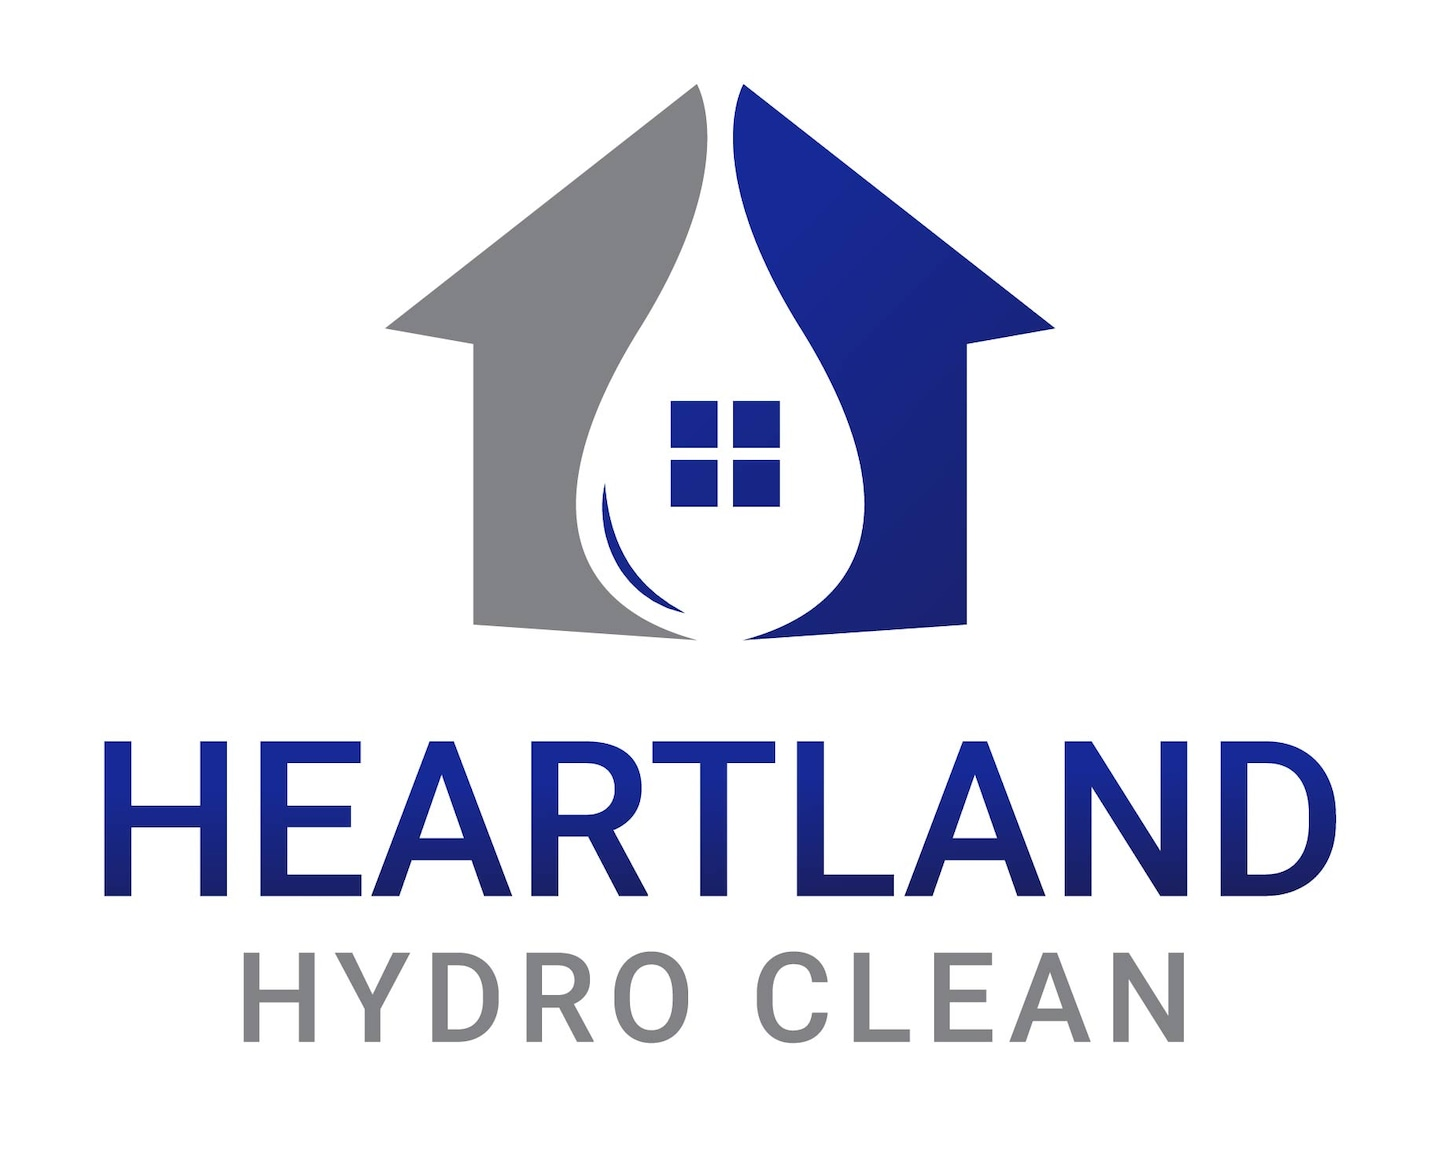 Heartland Hydro Clean